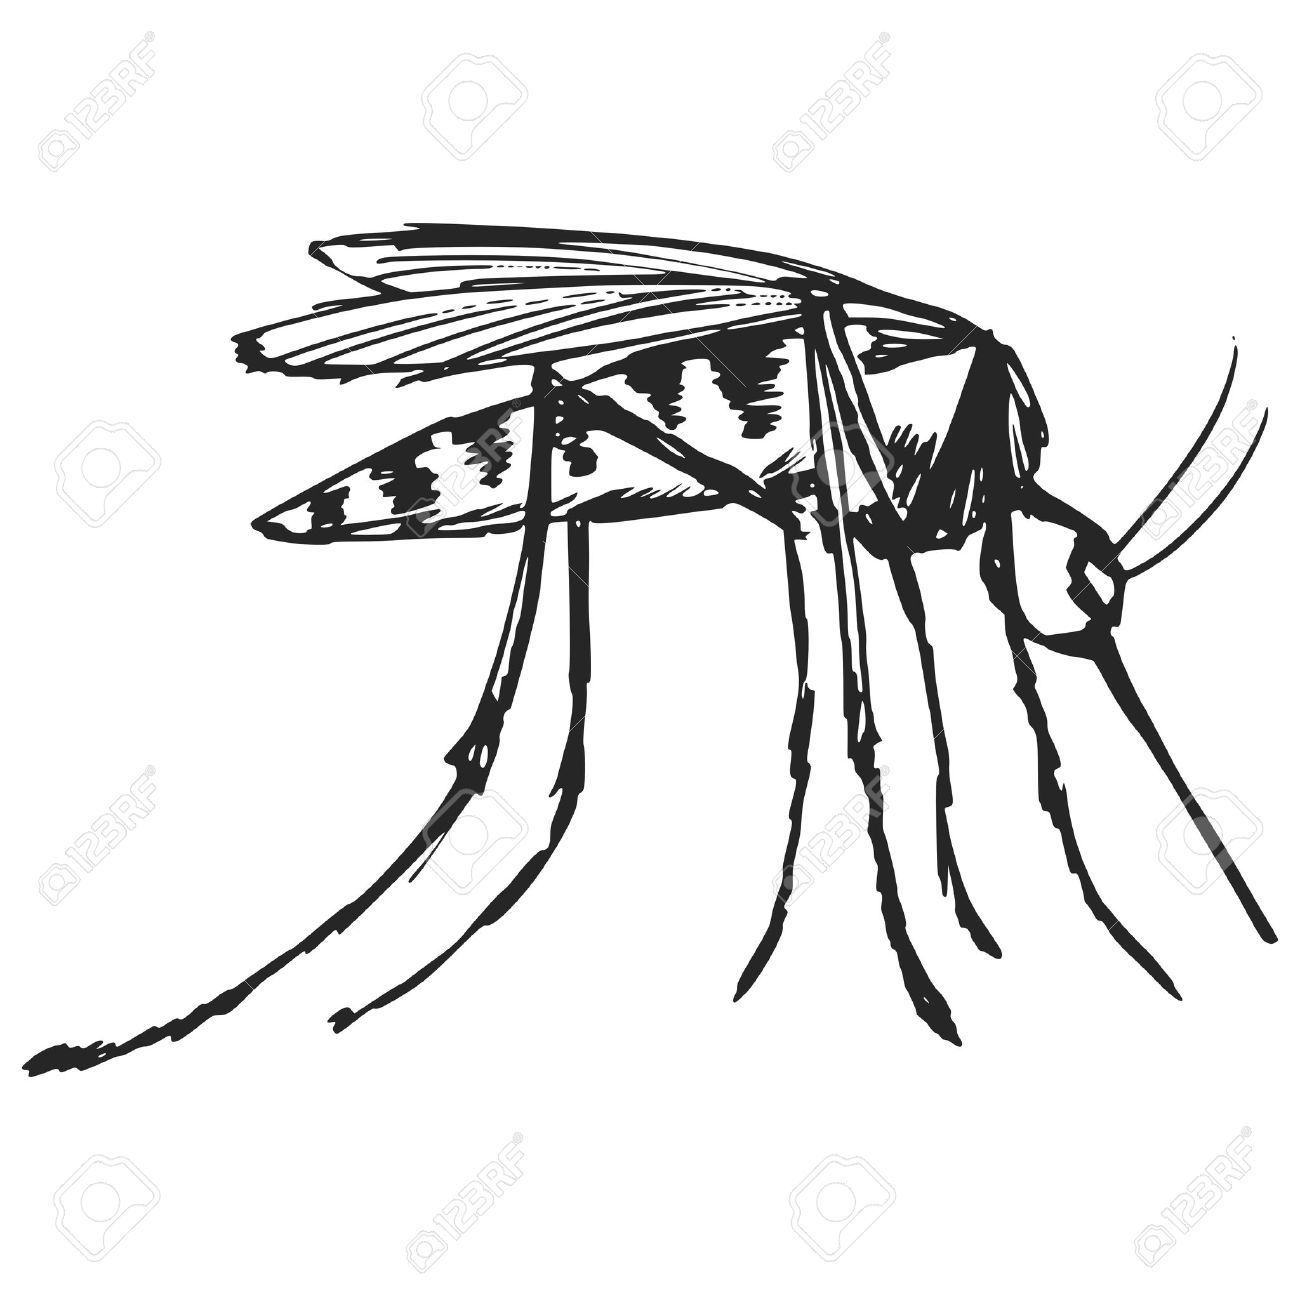 1300x1300 Hand Drawn, Sketch, Cartoon Illustration Of Mosquito Royalty Free